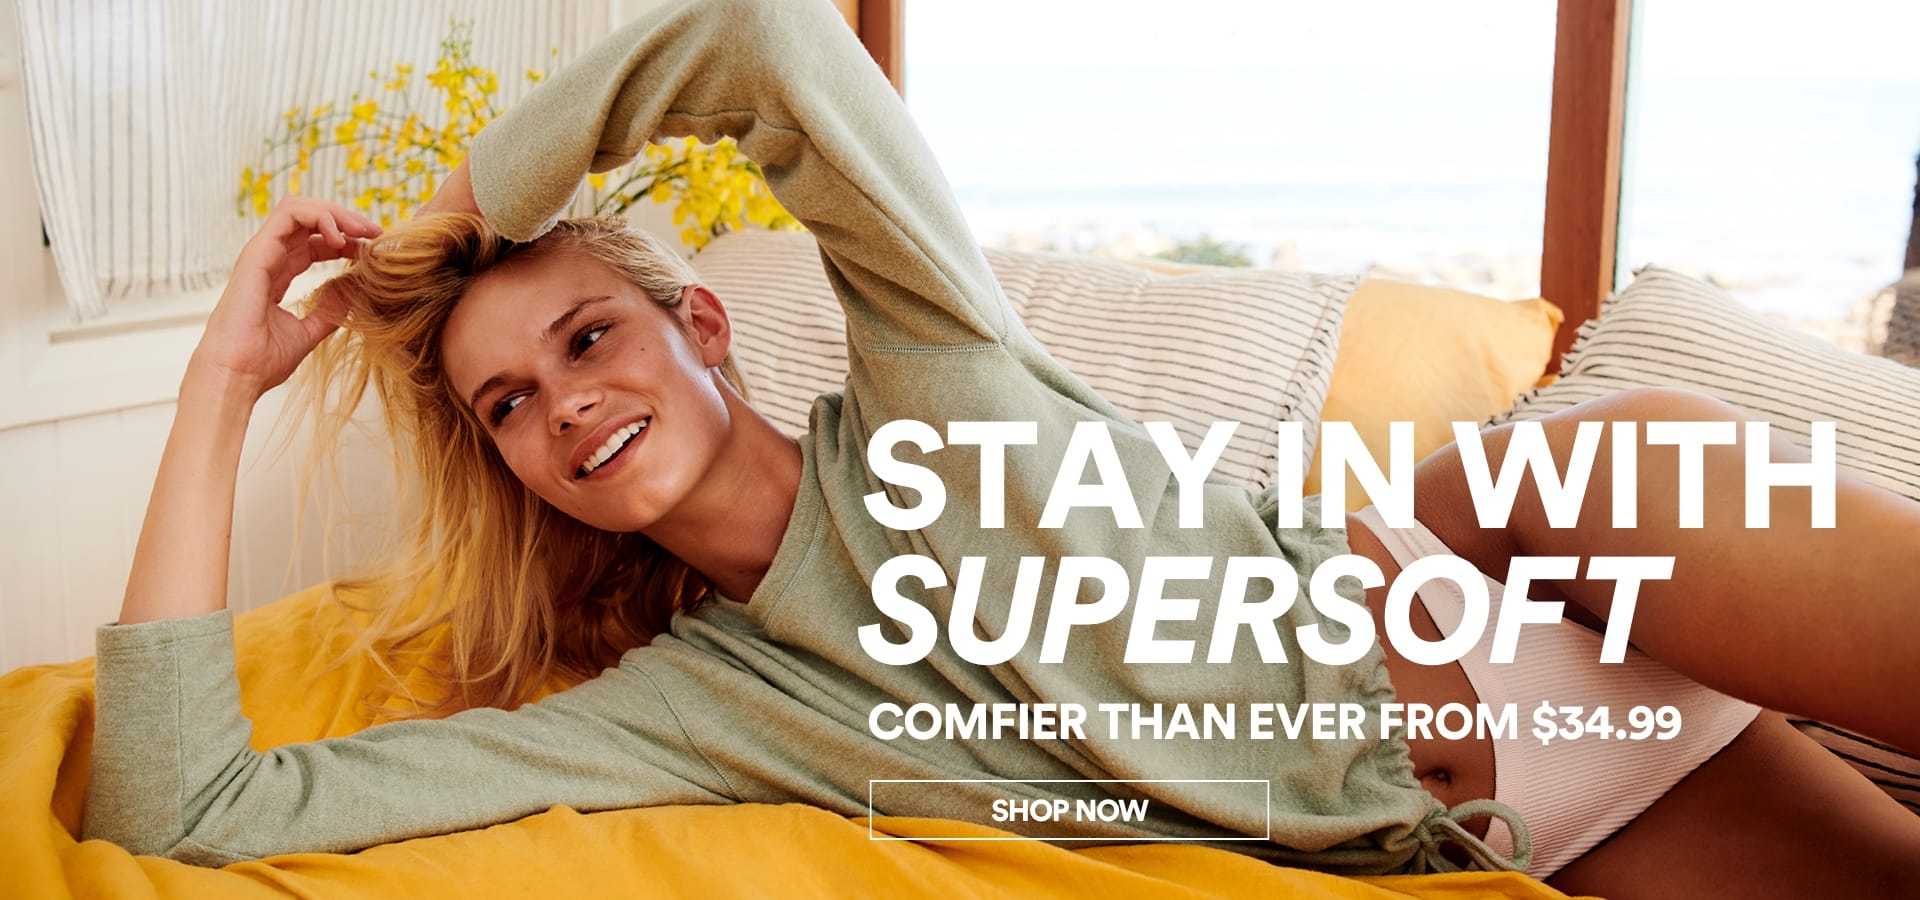 Stay in with Supersoft. Click to shop.